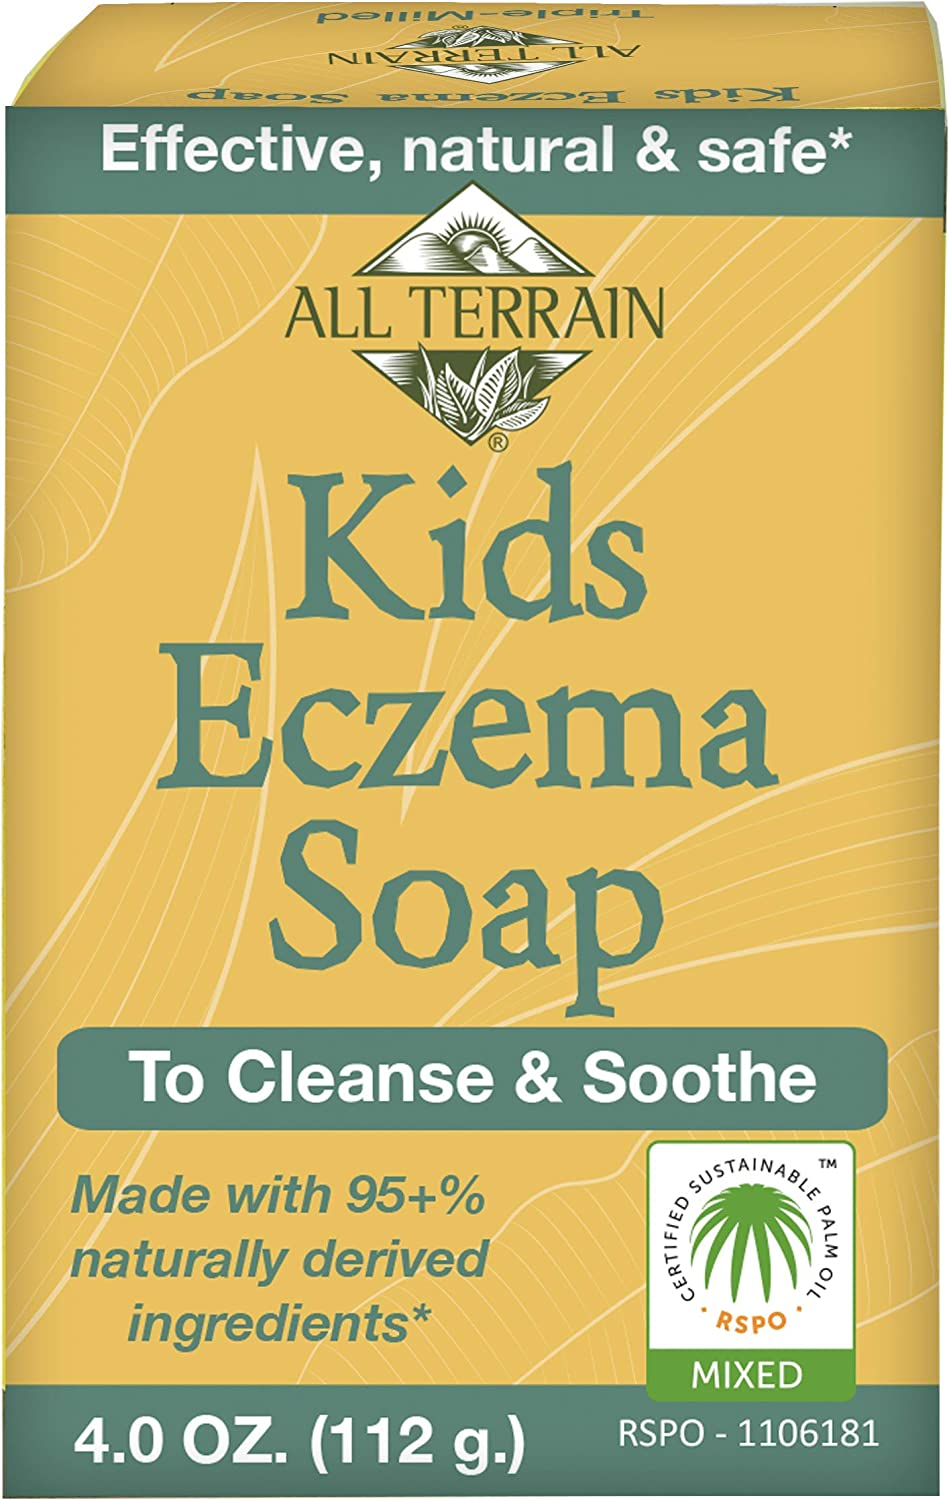 All Terrain Kids Eczema Relief, To Cleanse & Soothe Kids' Itchy & Irritated Skin